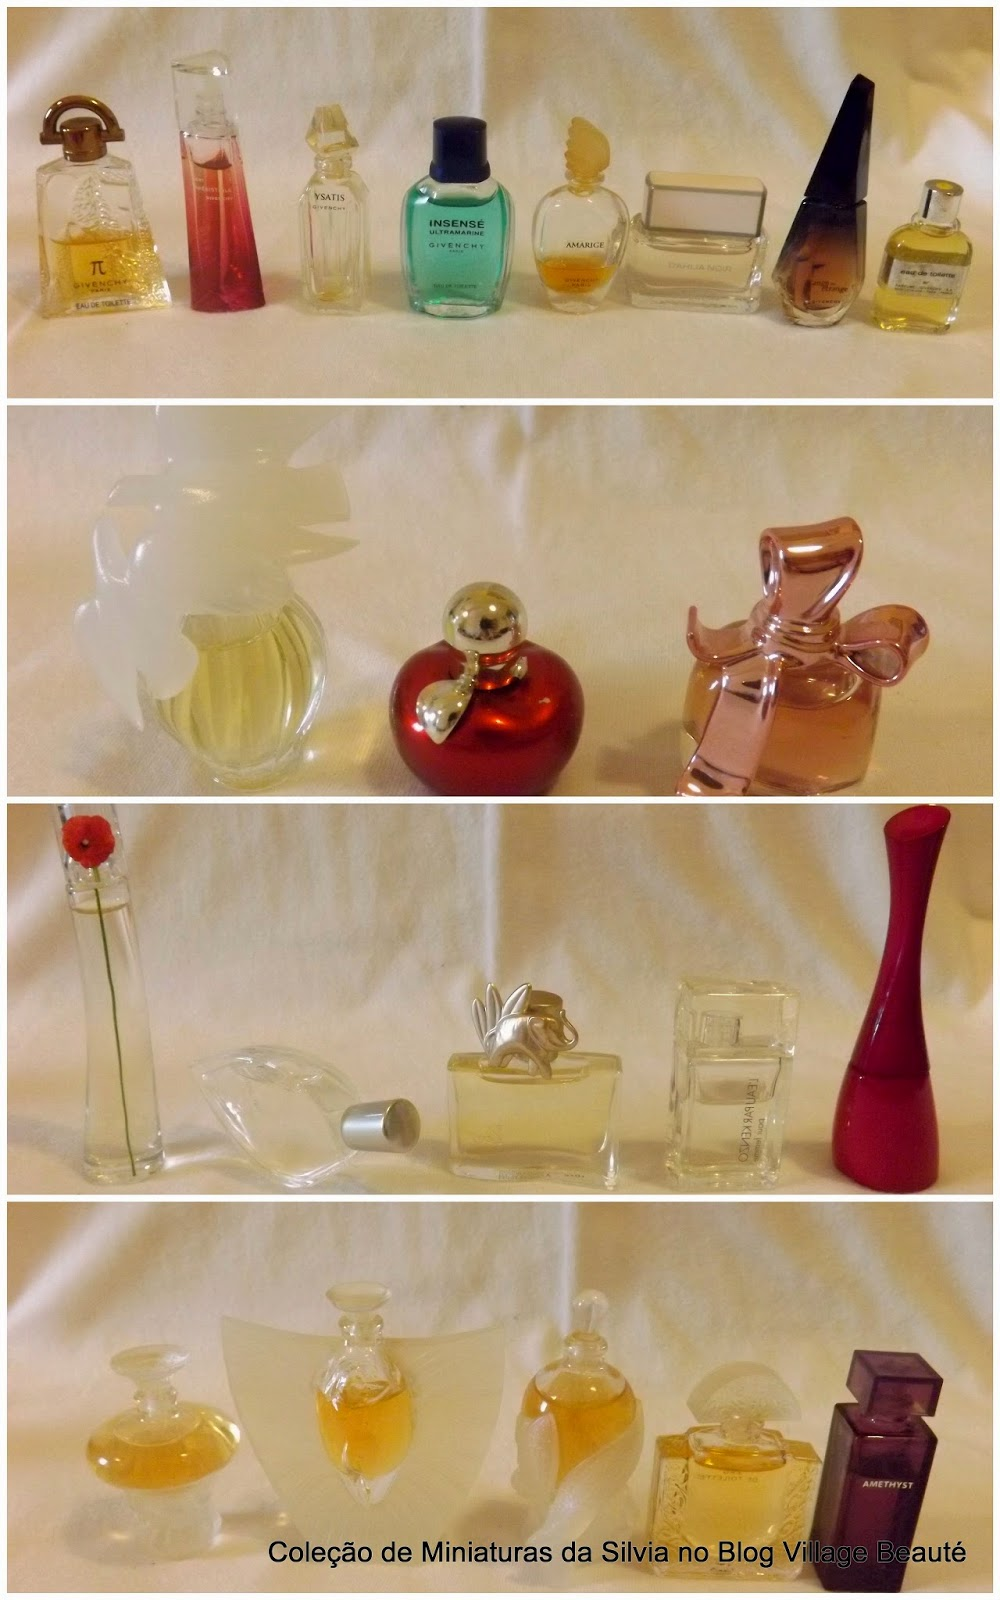 MINI FRAGRANCE COLLECTION